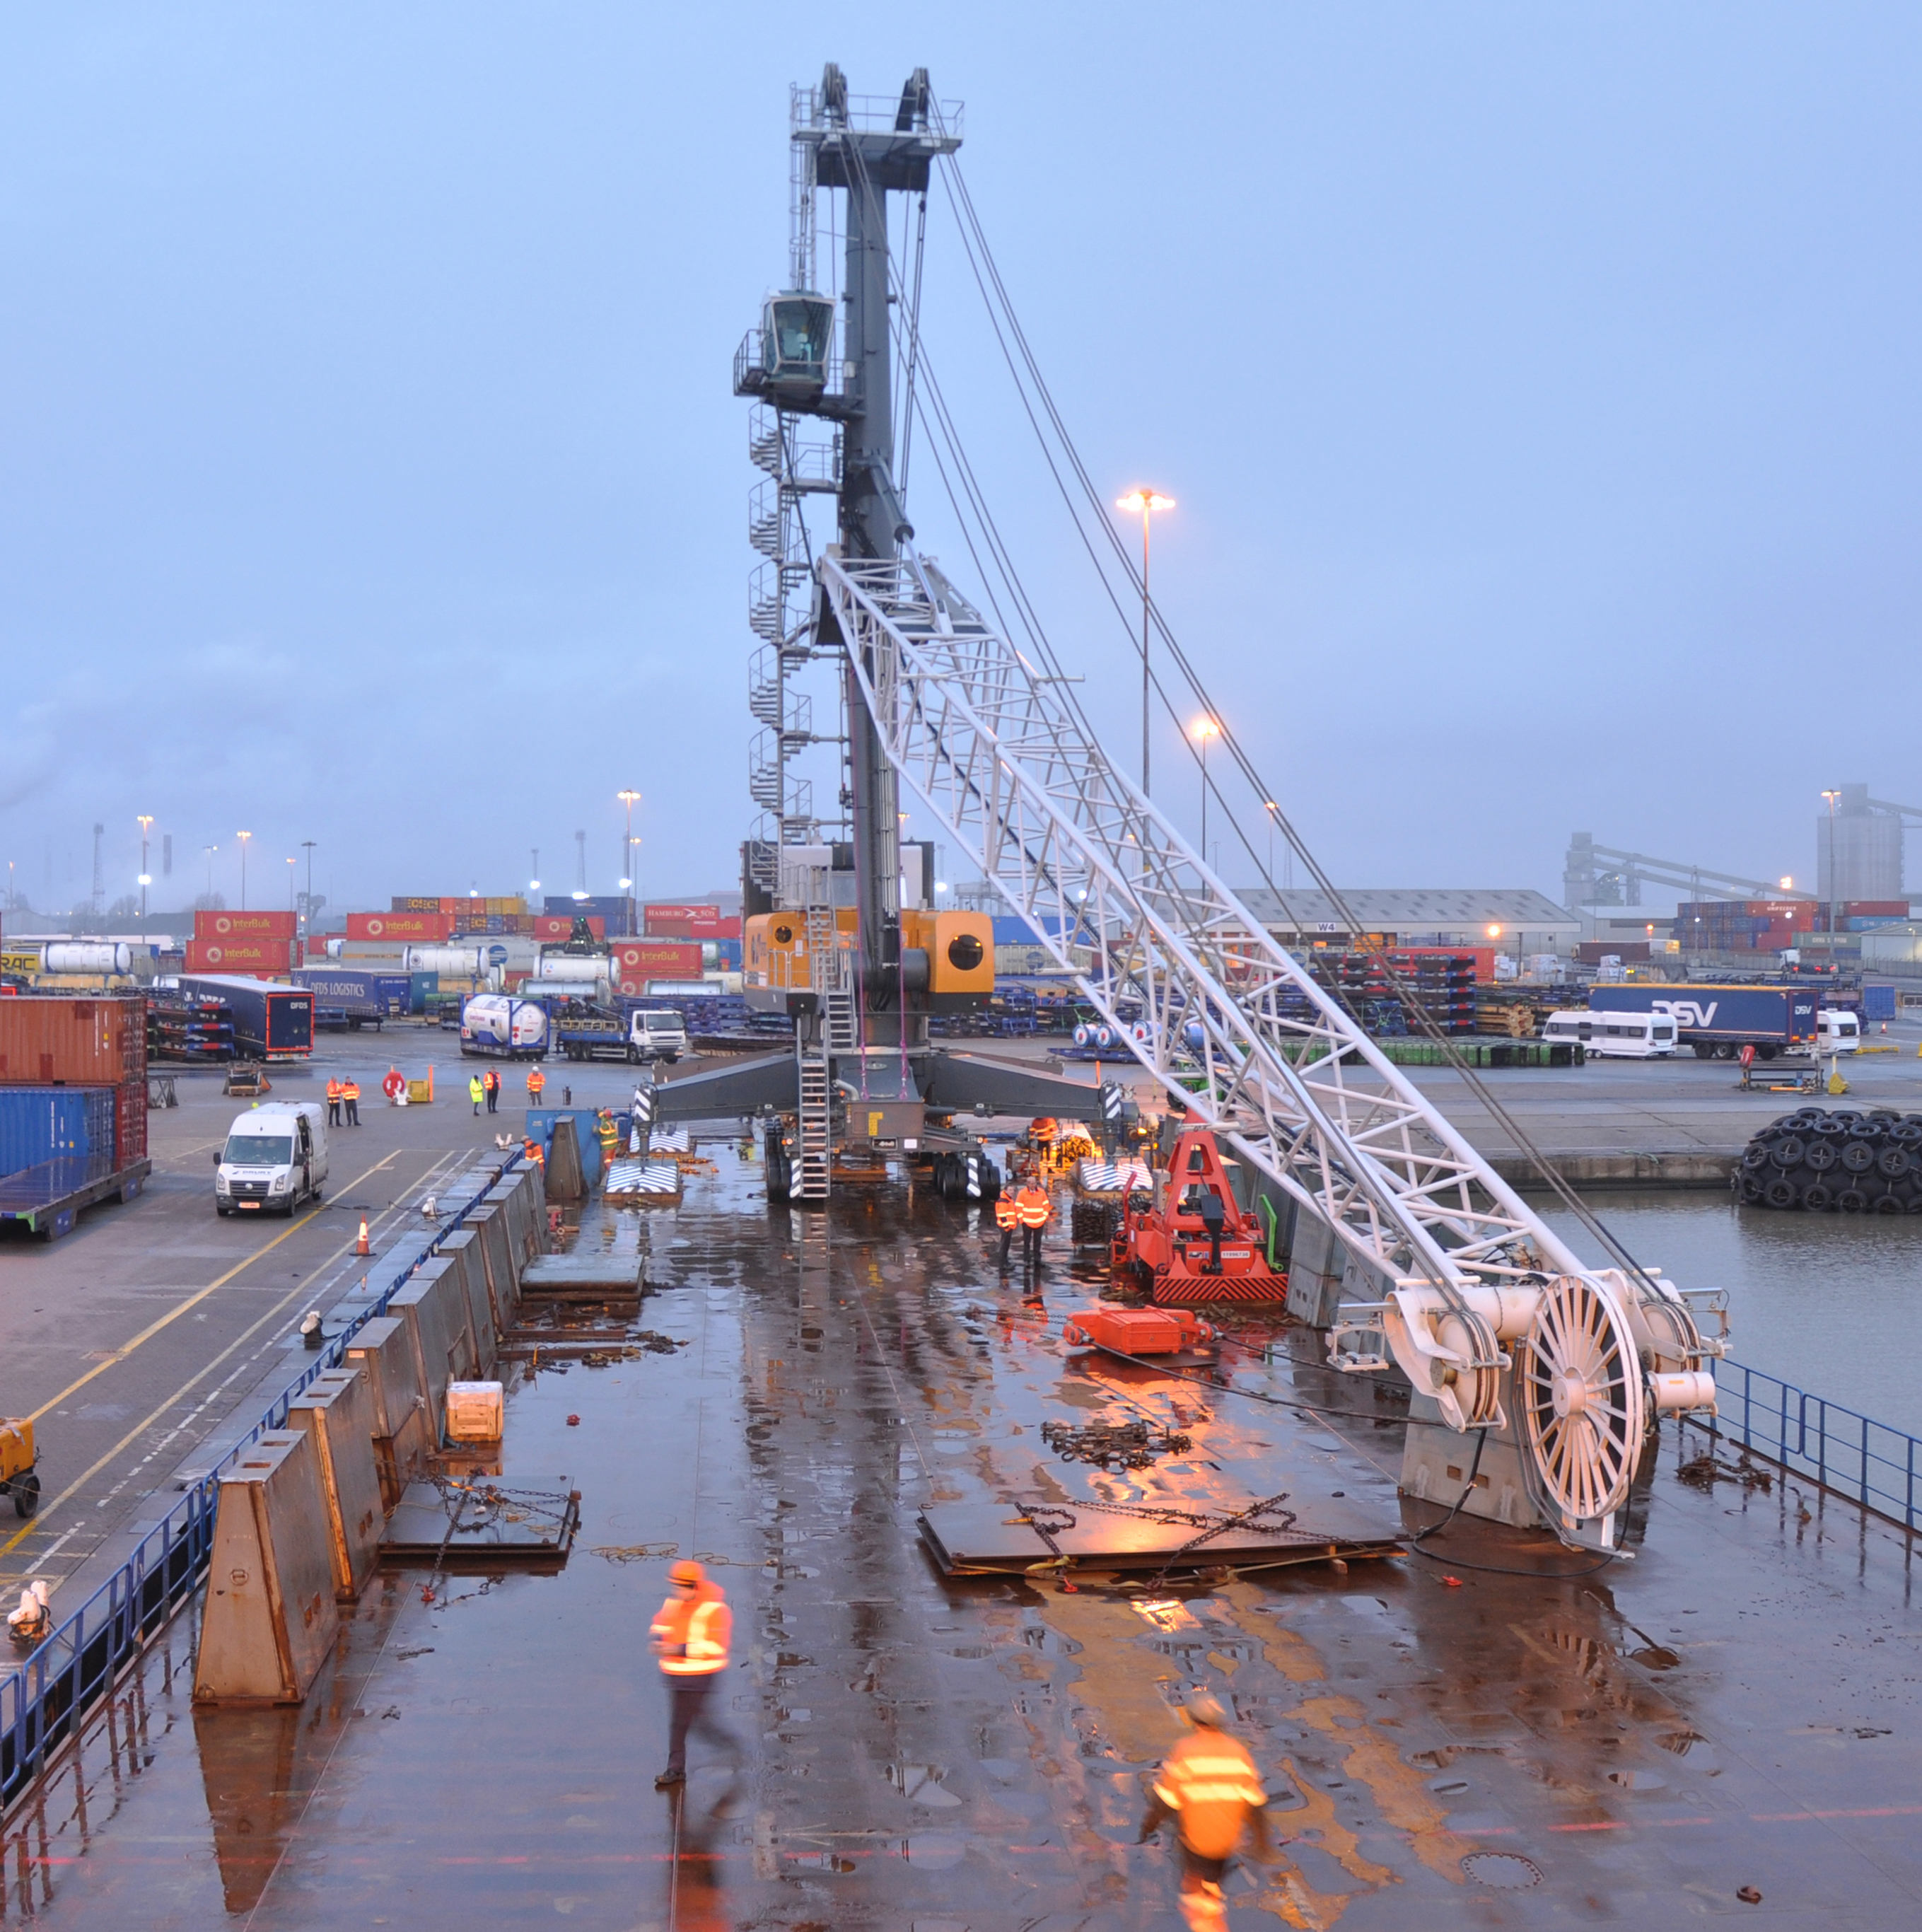 DFDS invests £3M in new Liebherr MHC at Immingham